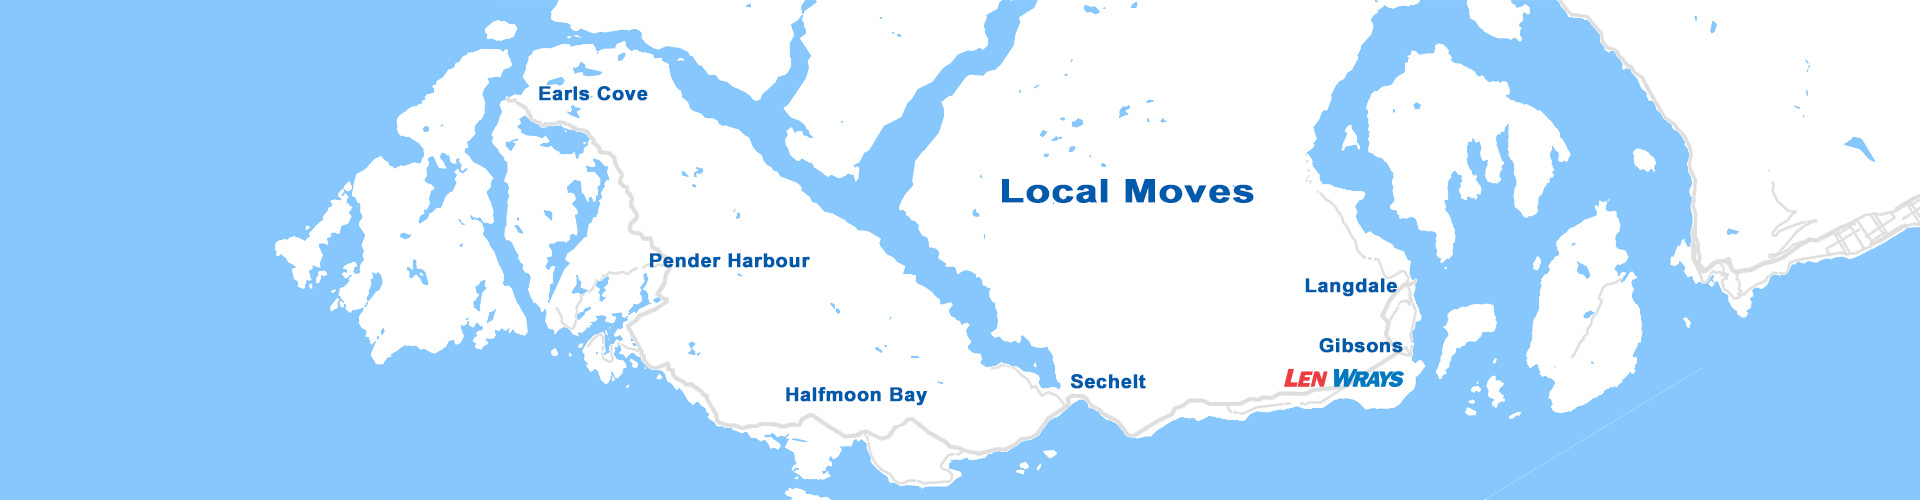 local-moves-hss